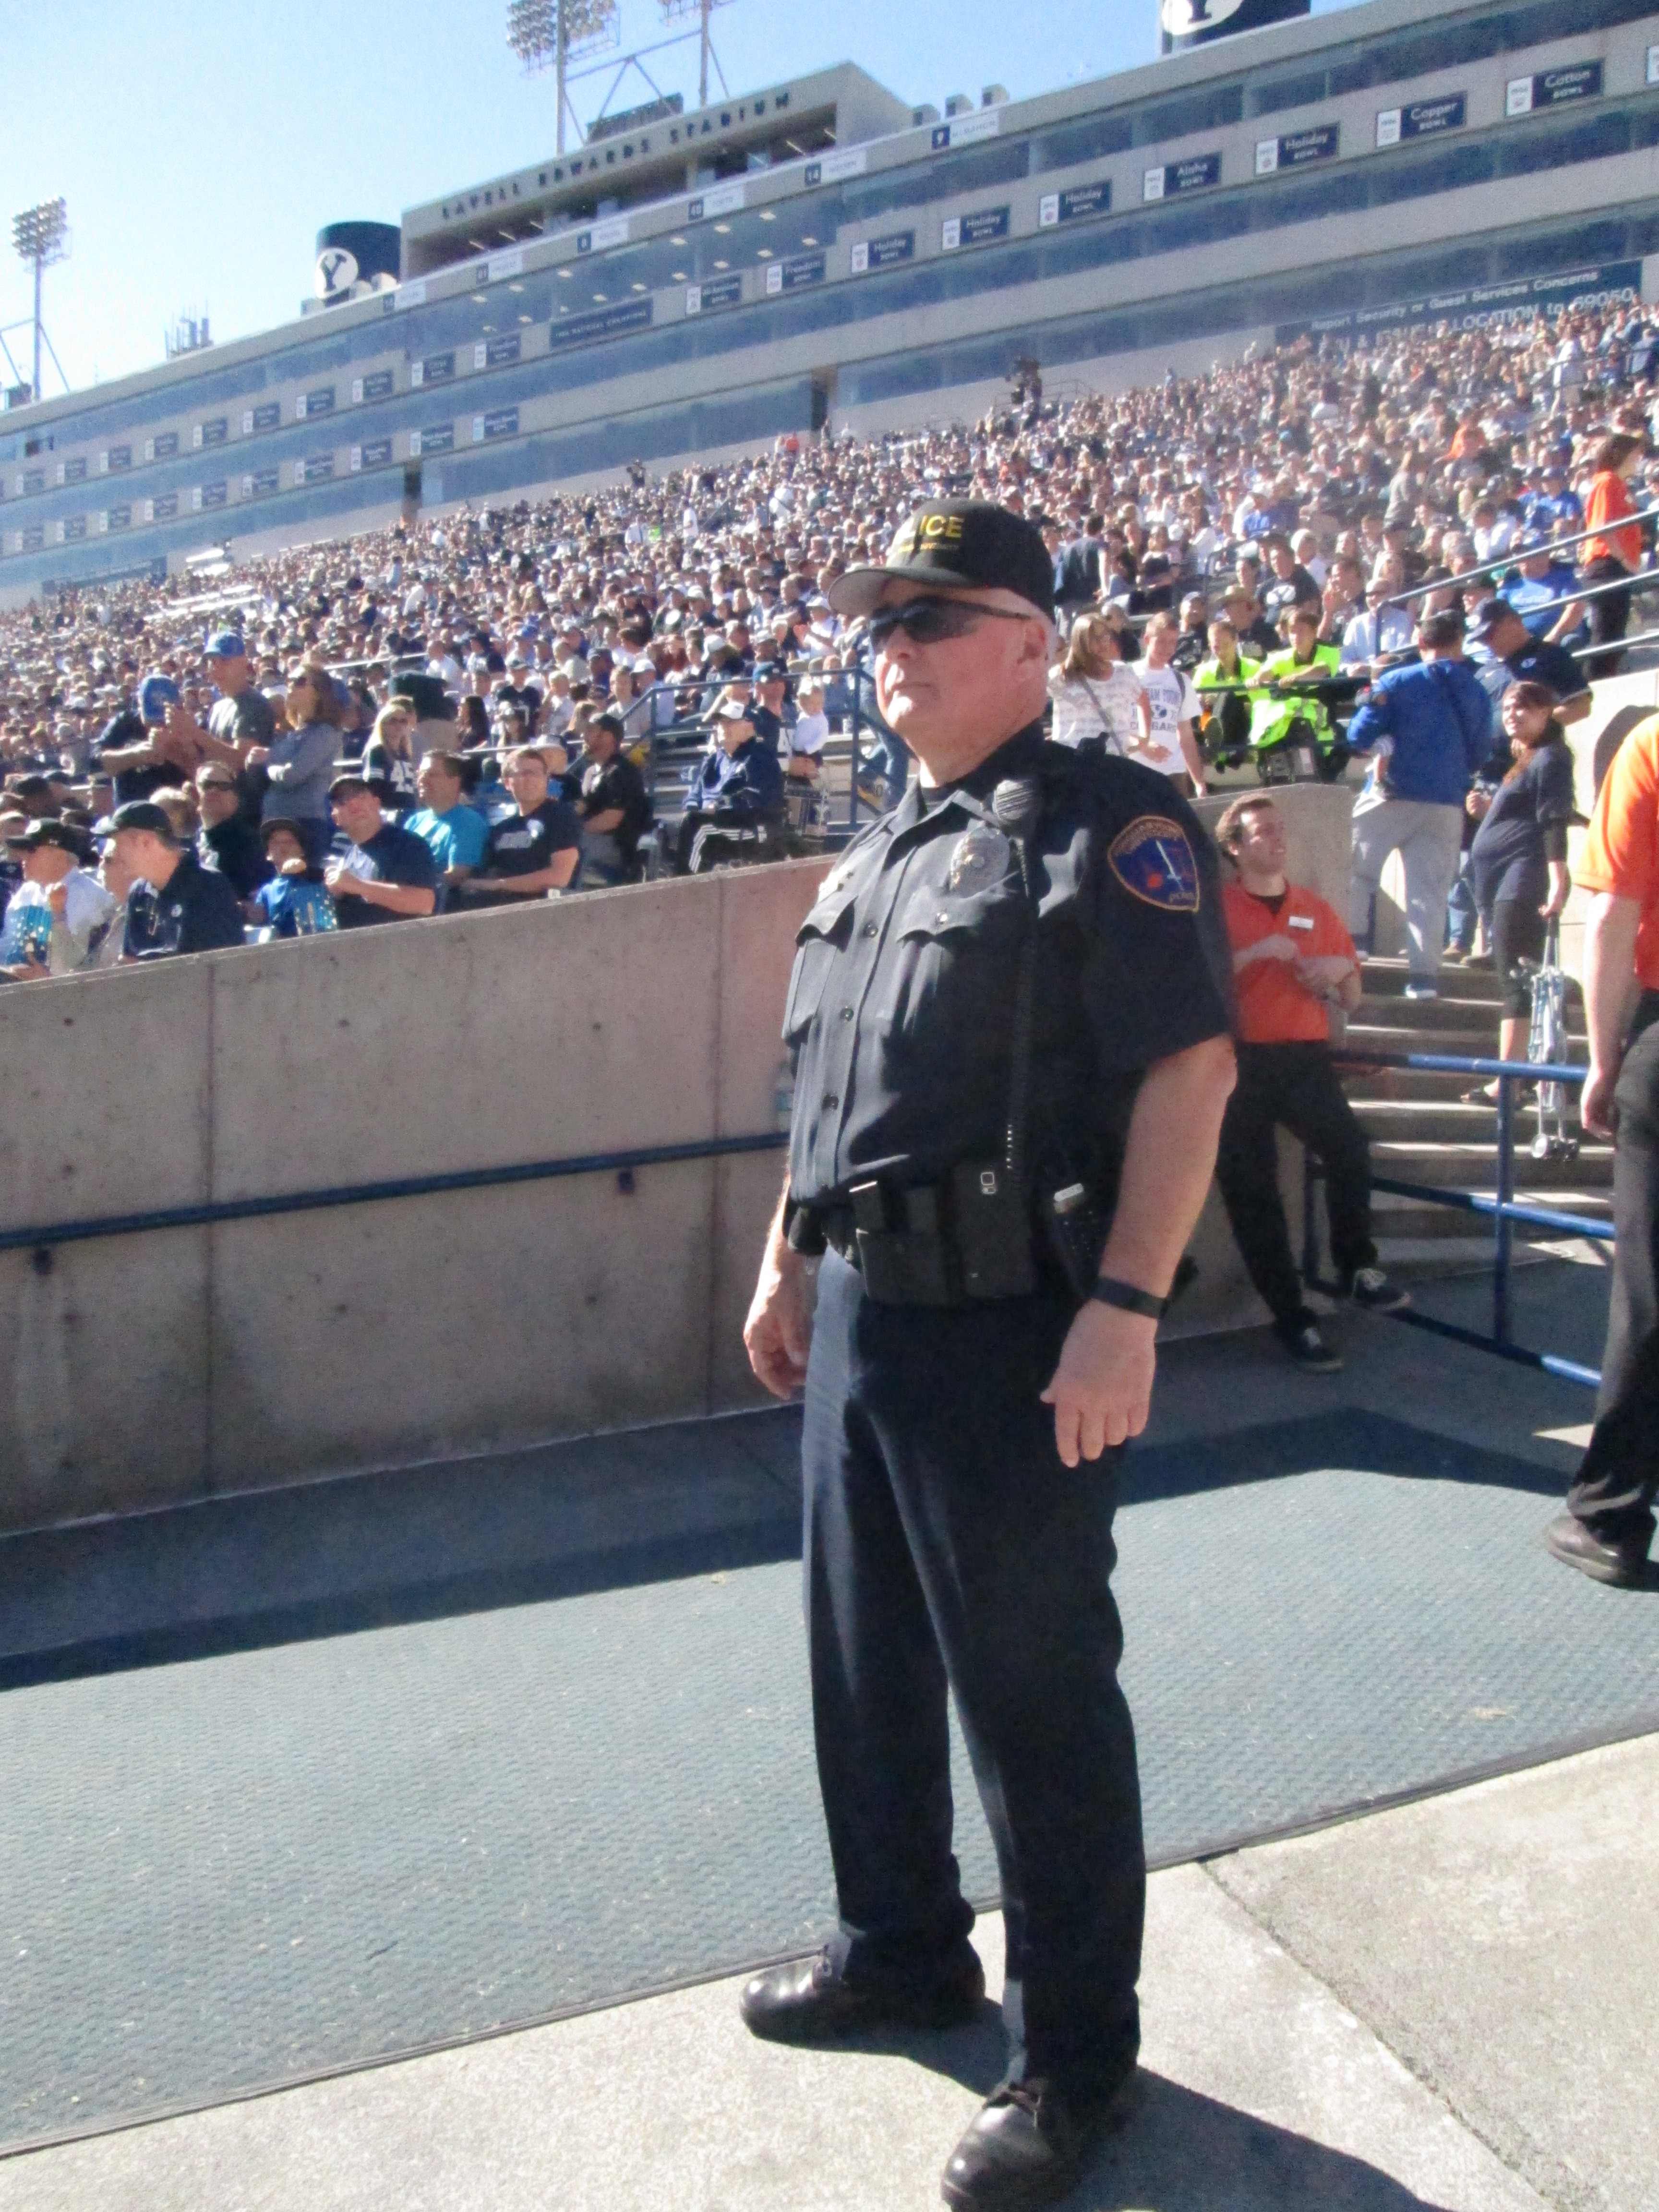 Sargent Pierce watchs for anything abnormal among the fans in the North Stadium. (Photo By: Stacie Faulk)